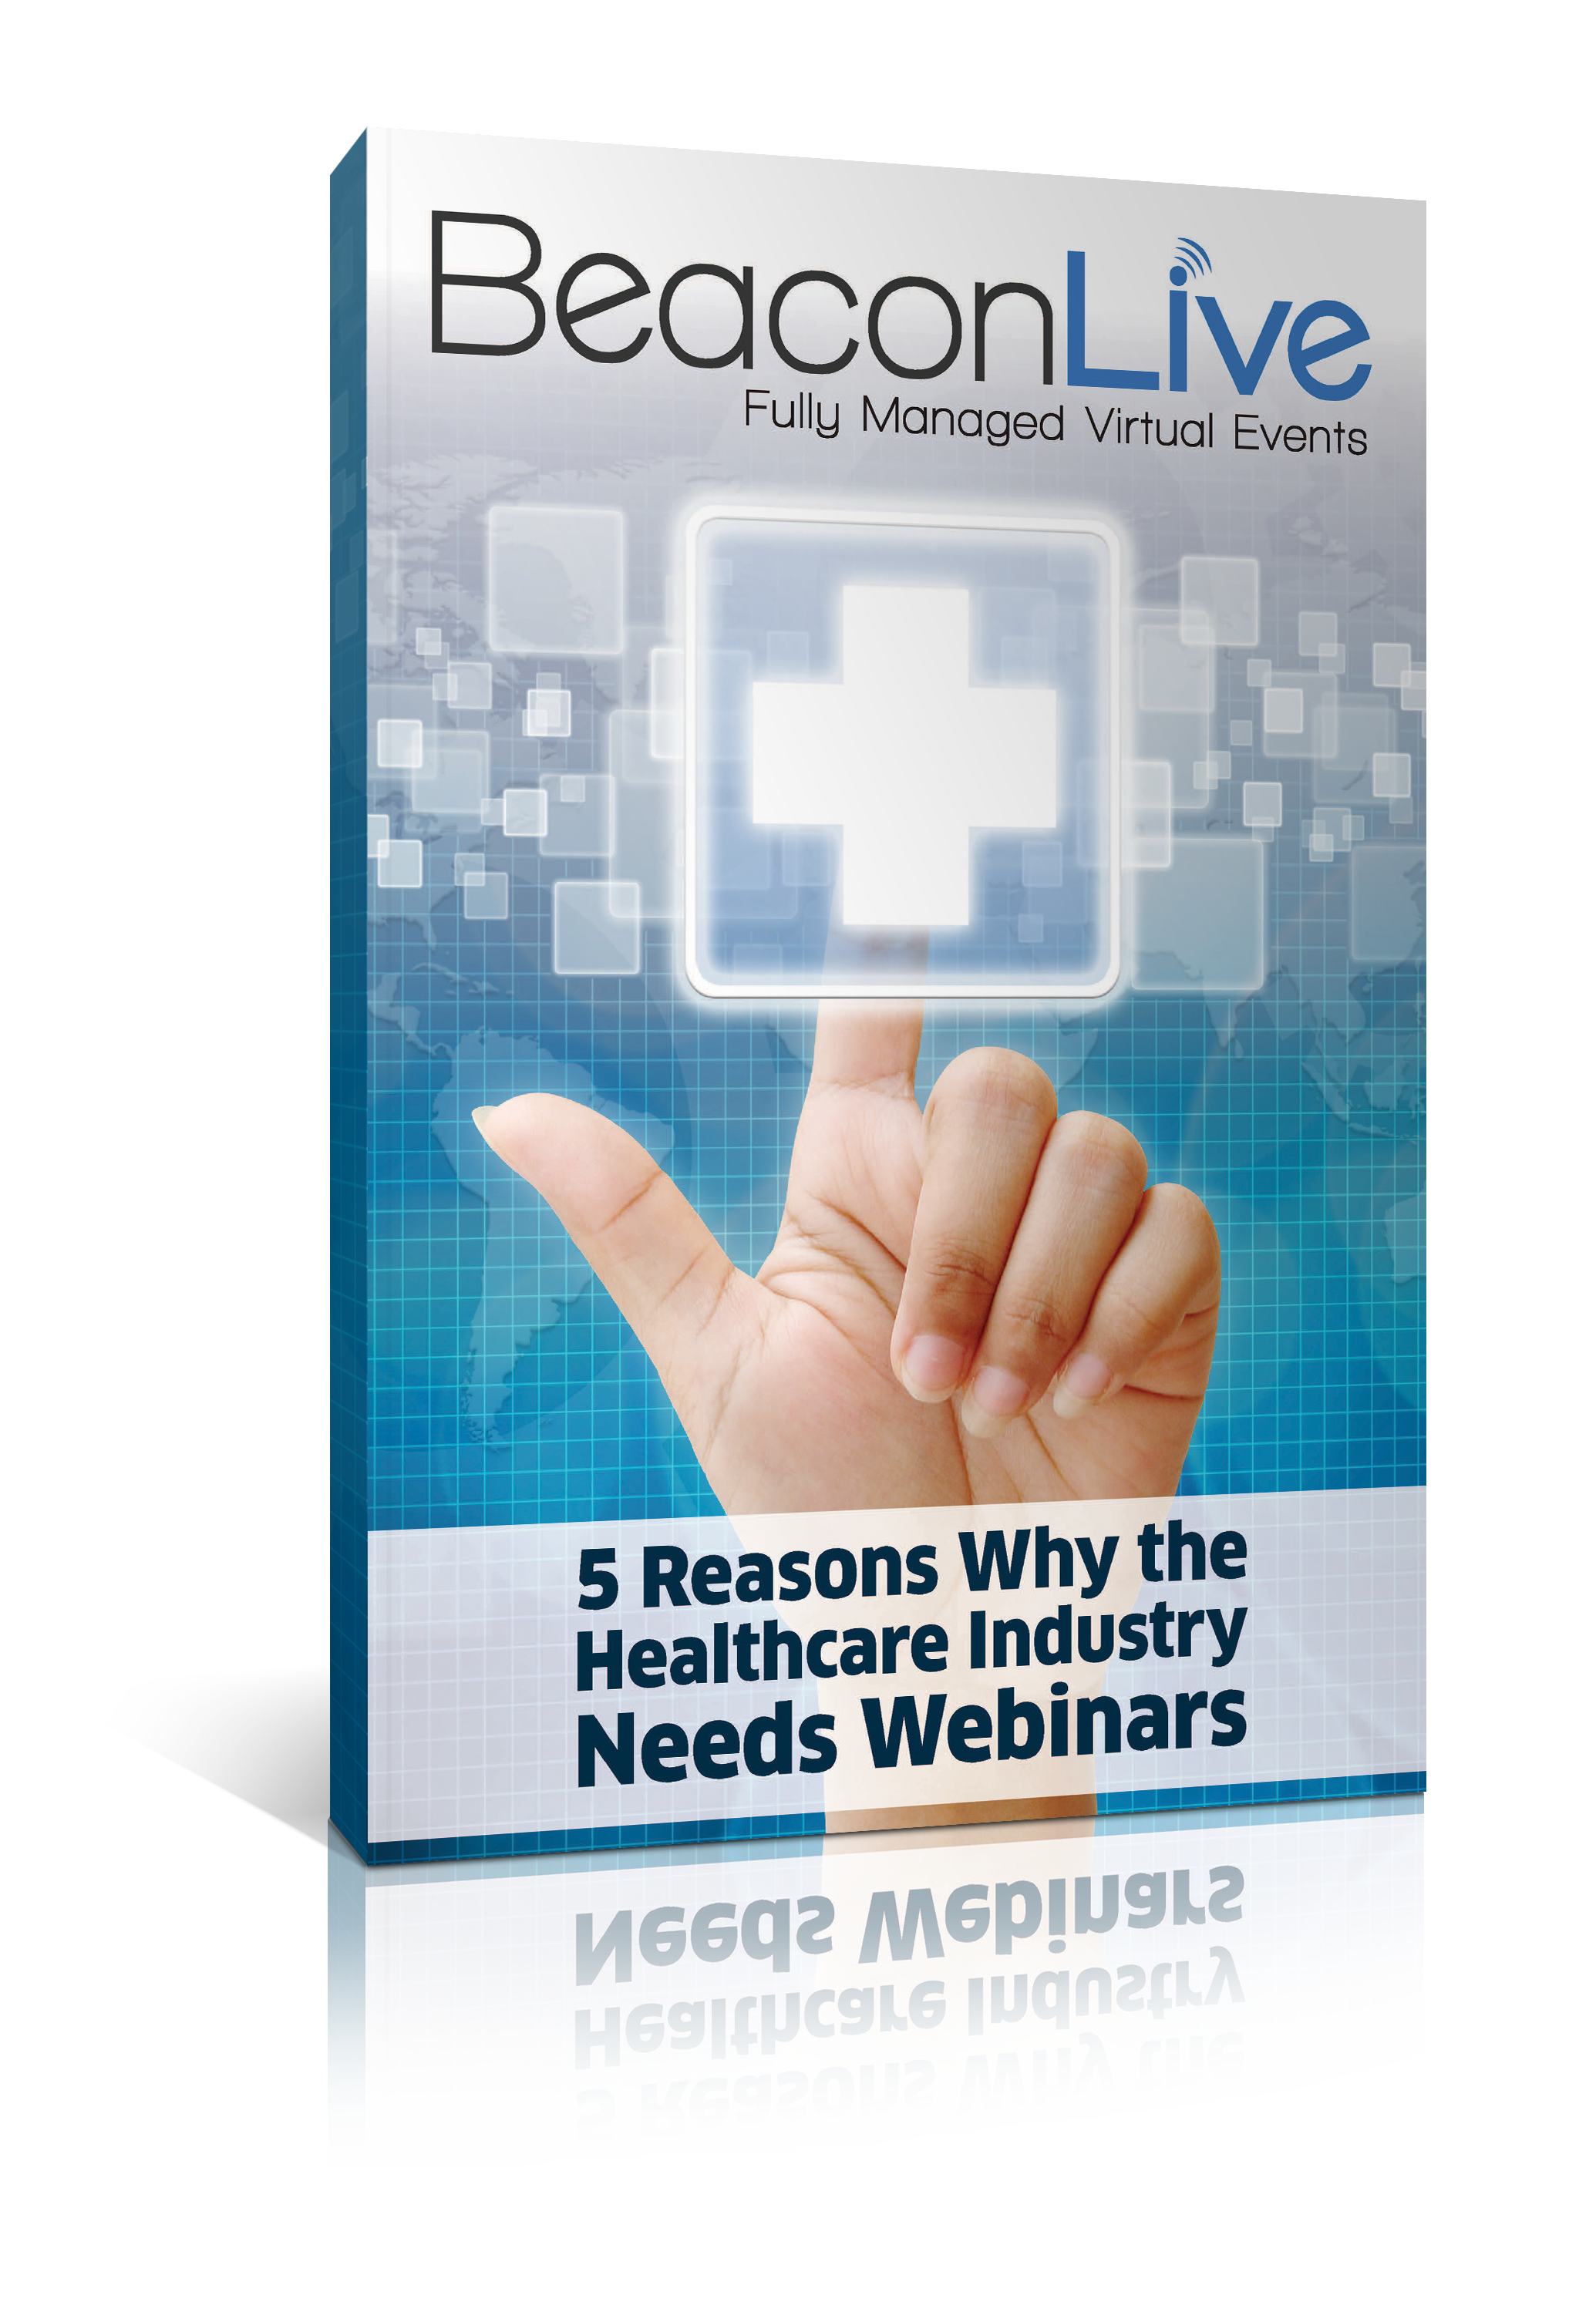 BeaconLive and Responsive Inbound Marketing